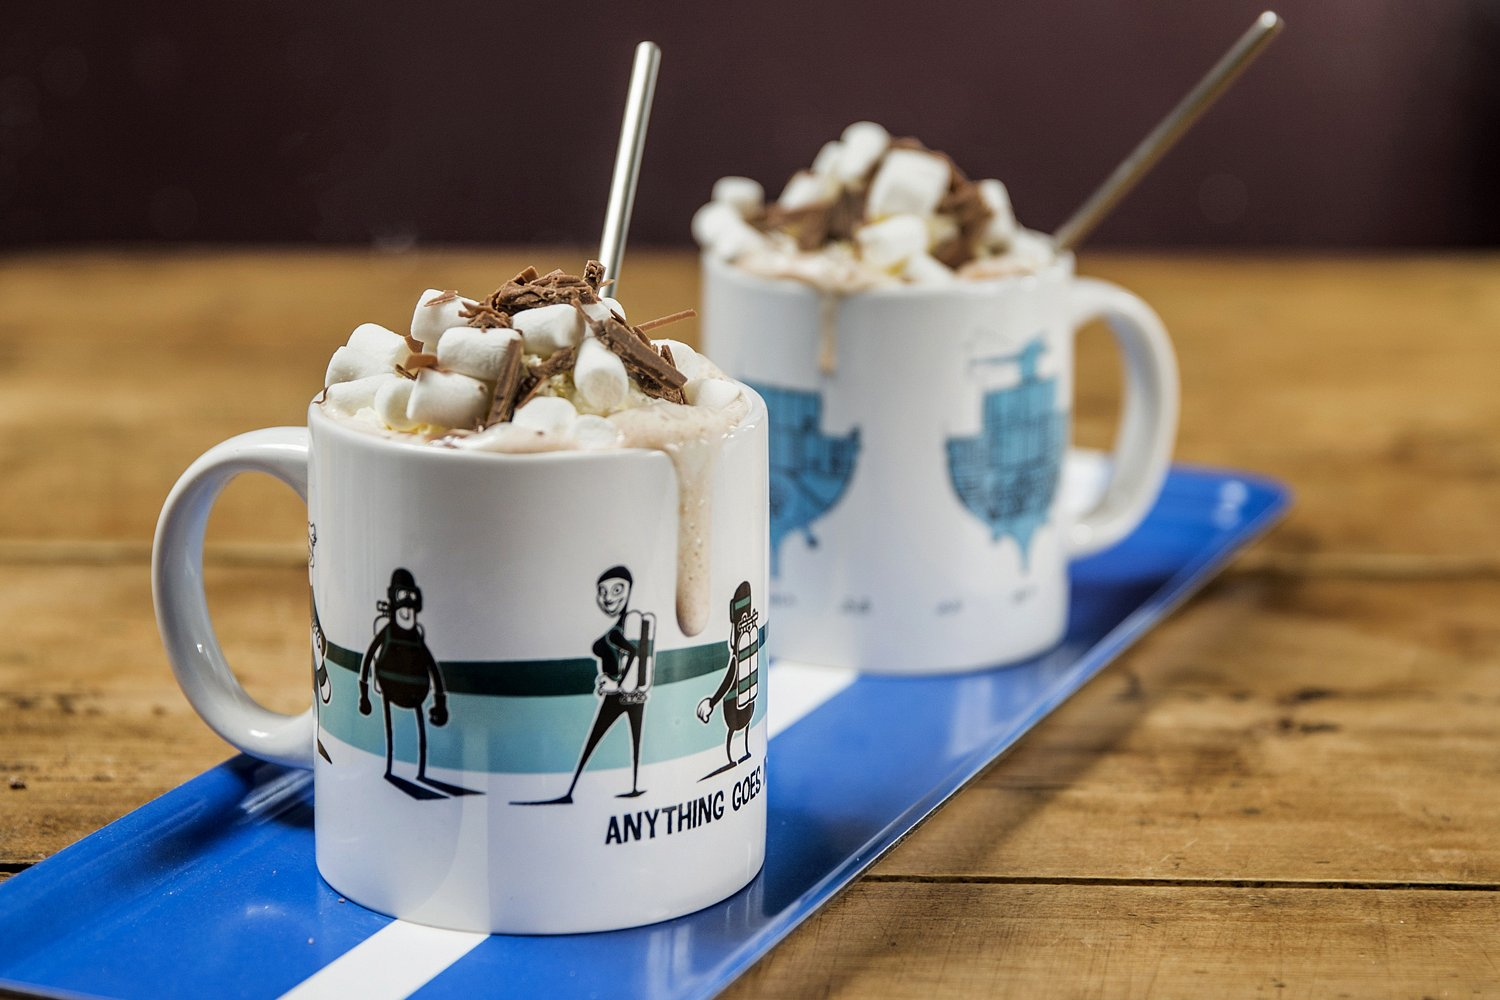 Huskyan hot chocolate